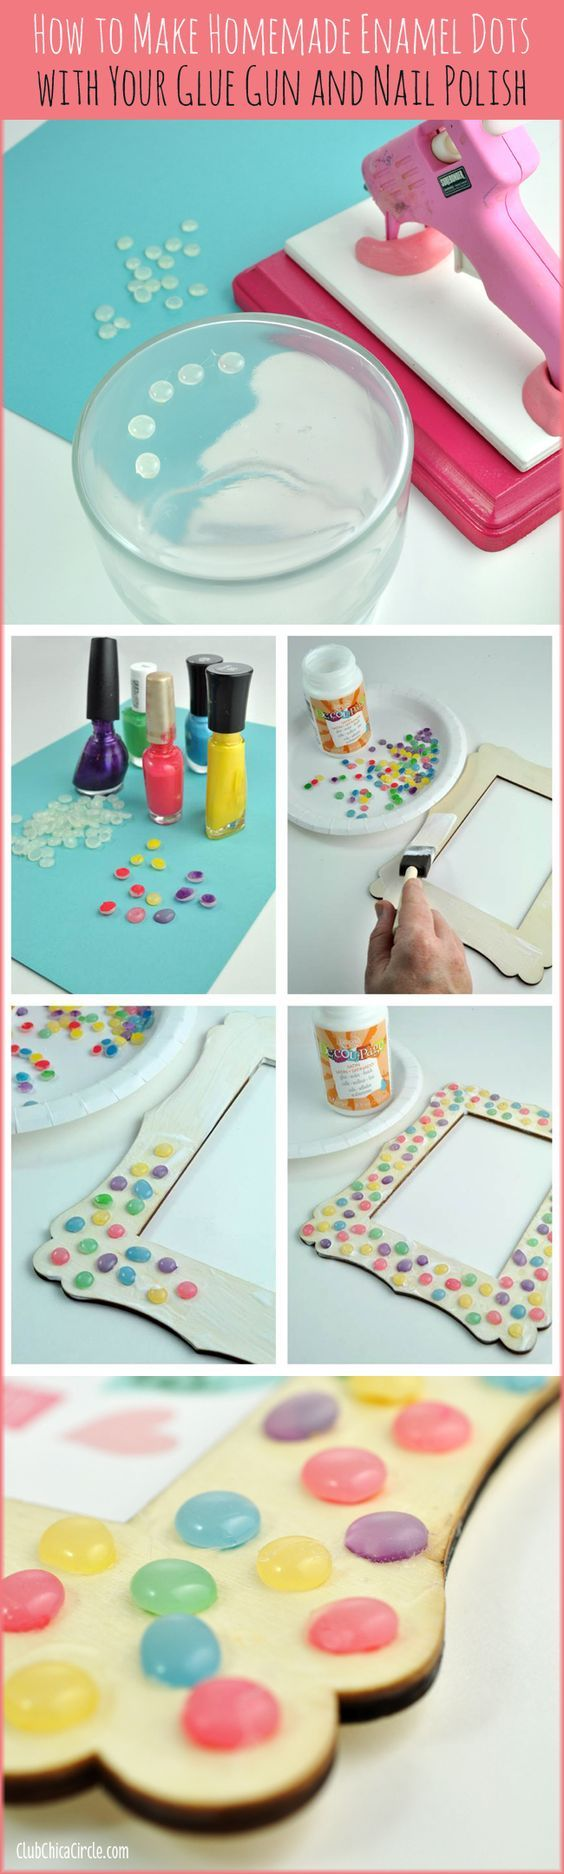 How to Make Homemade Enamel Dots with your Glue Gun and Nail Polish: